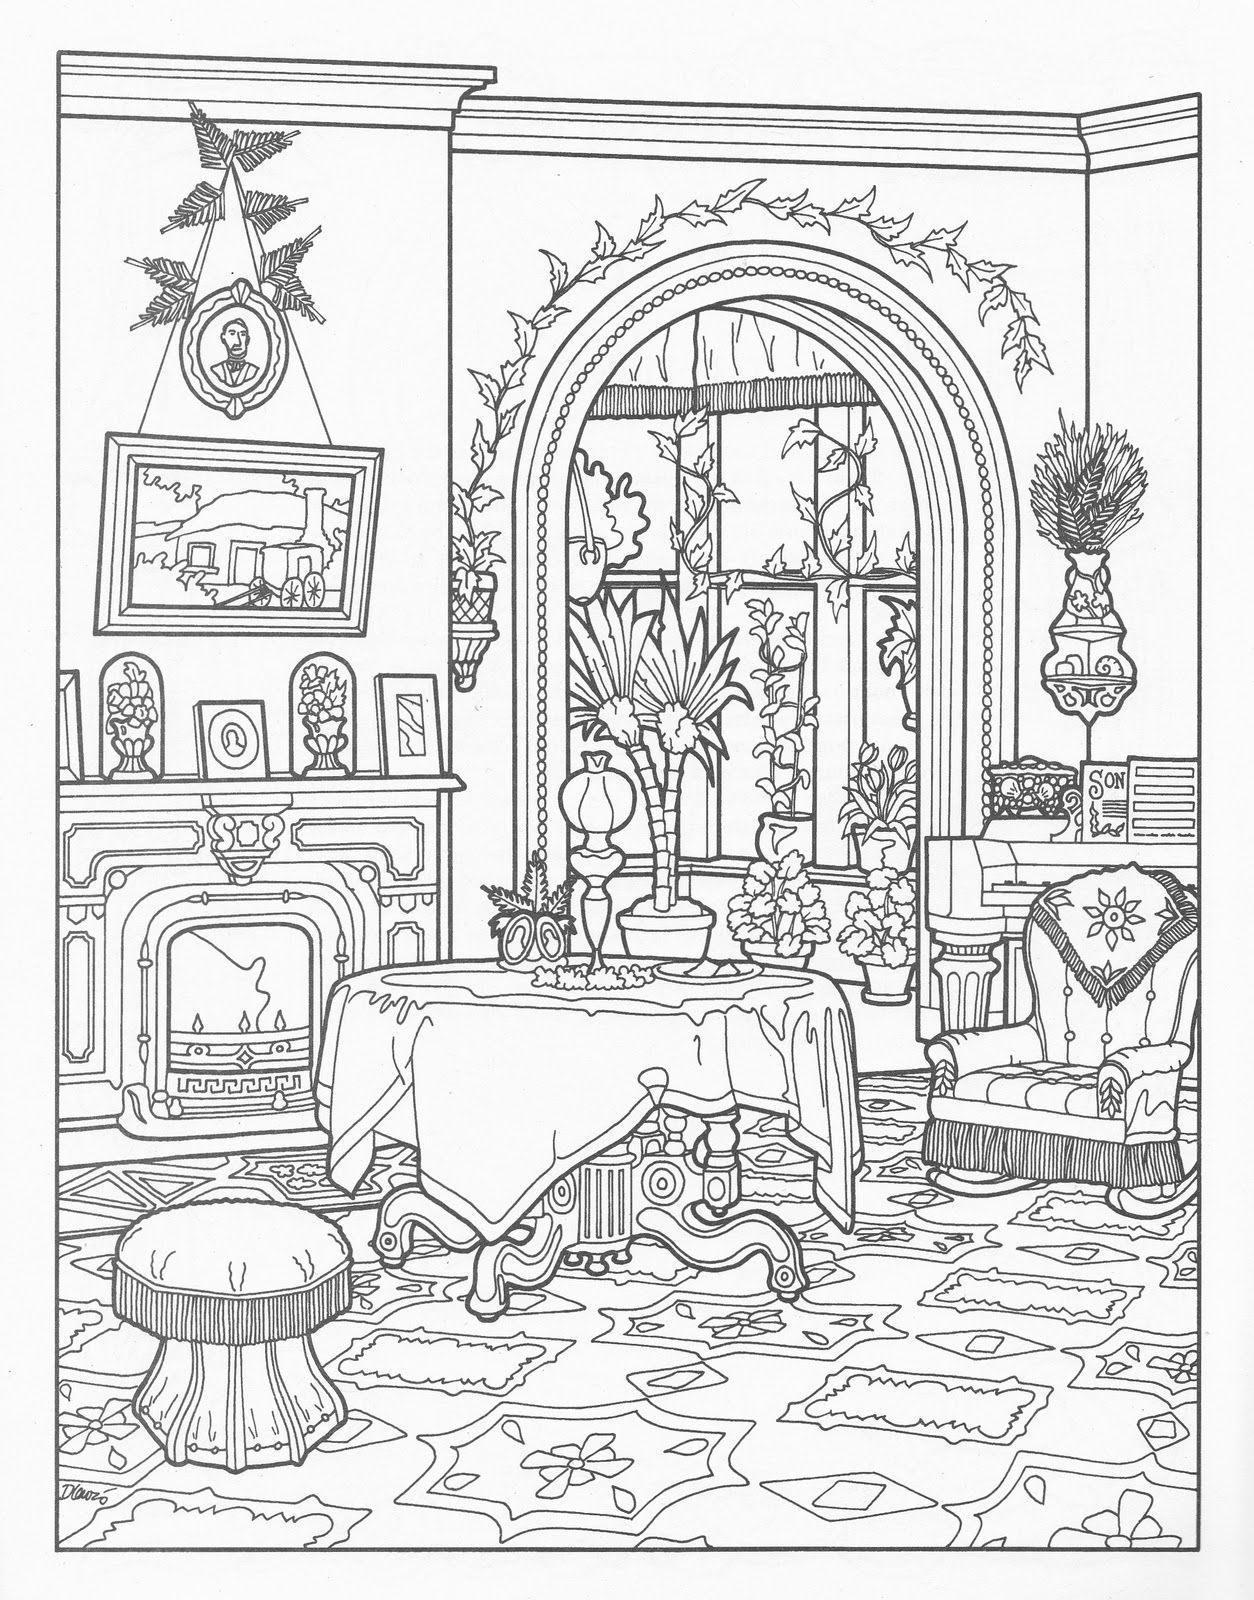 victorian pictures to colour victorian coloring pages coloring home to pictures victorian colour